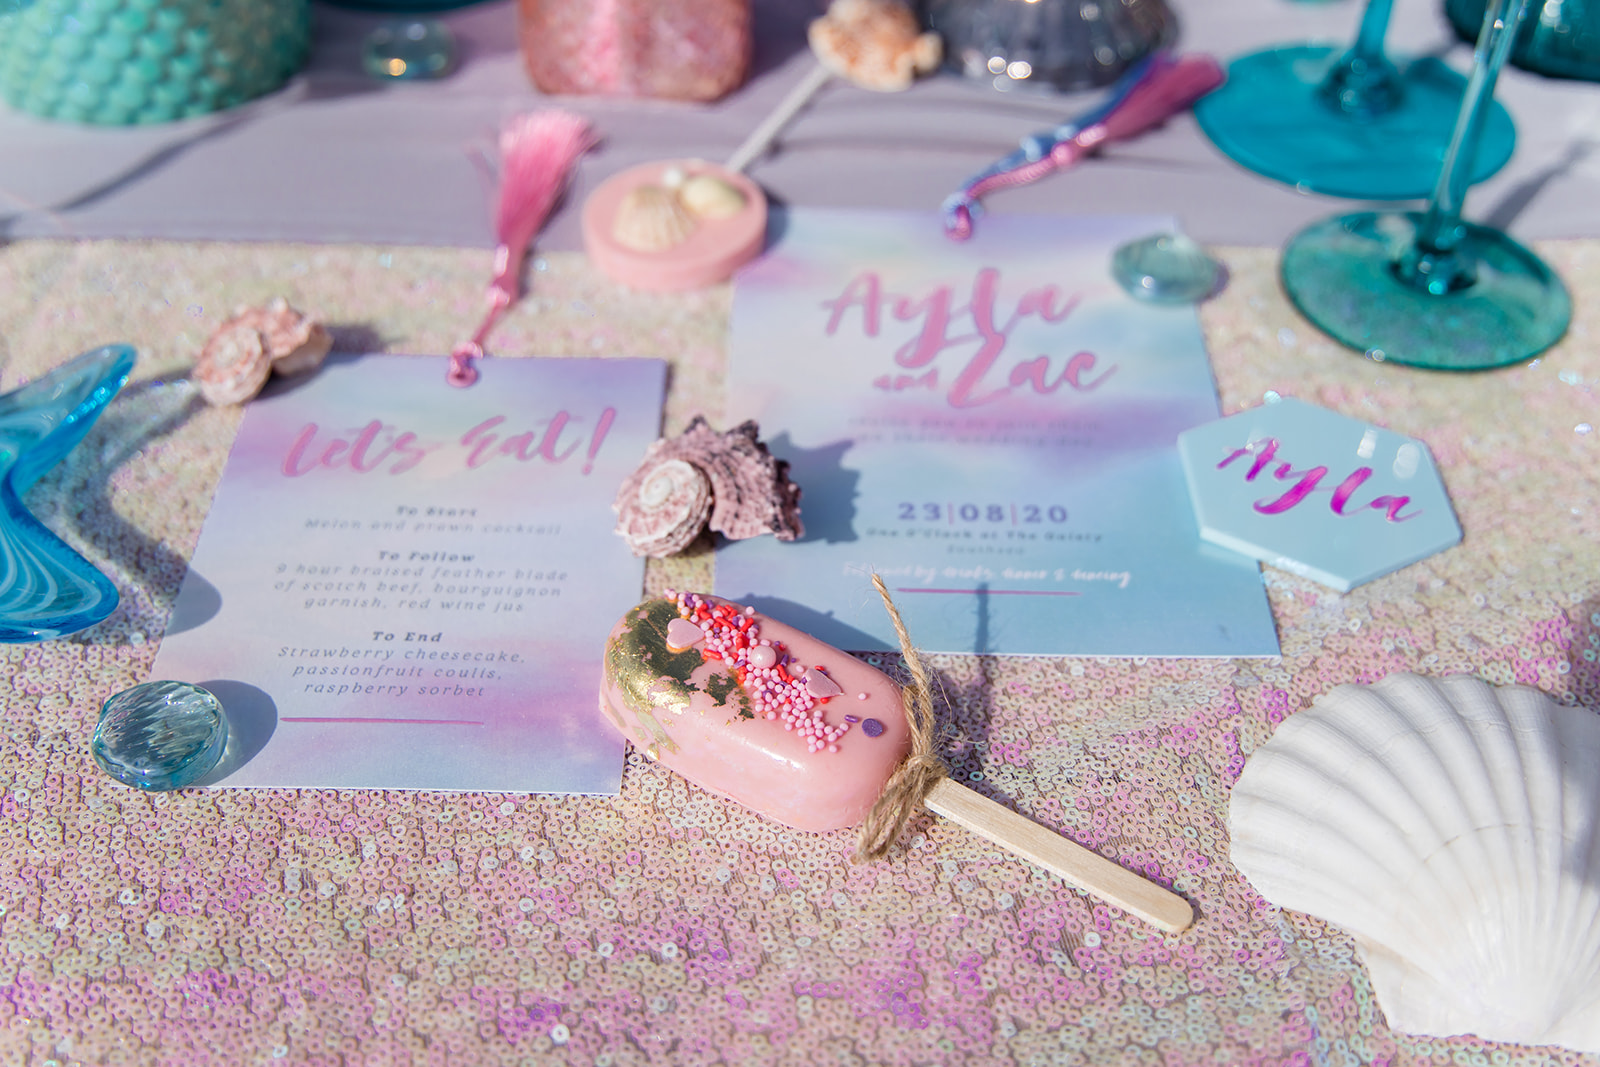 mermaid wedding - beach wedding - quirky wedding - unique wedding - alternative seaside wedding - alternative wedding - mermaid wedding - beach wedding - quirky wedding - unique wedding - alternative seaside wedding - mermaid wedding stationery - mermaid wedding invitations